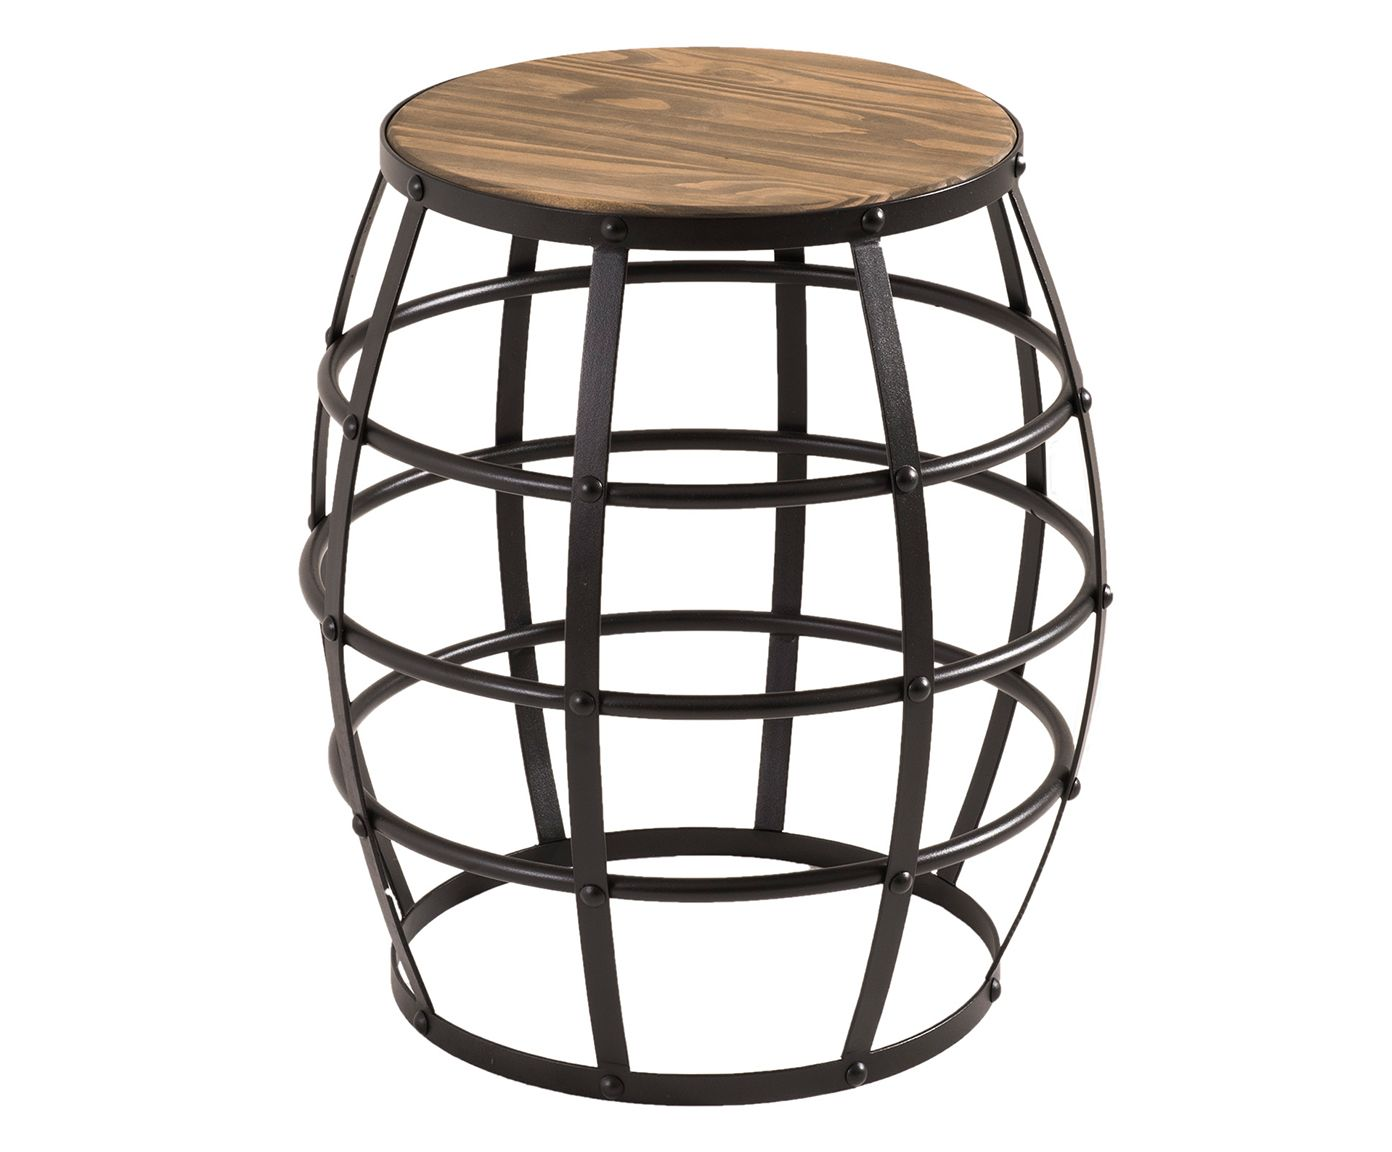 Garden Seat Italy - 50X46cm | Westwing.com.br